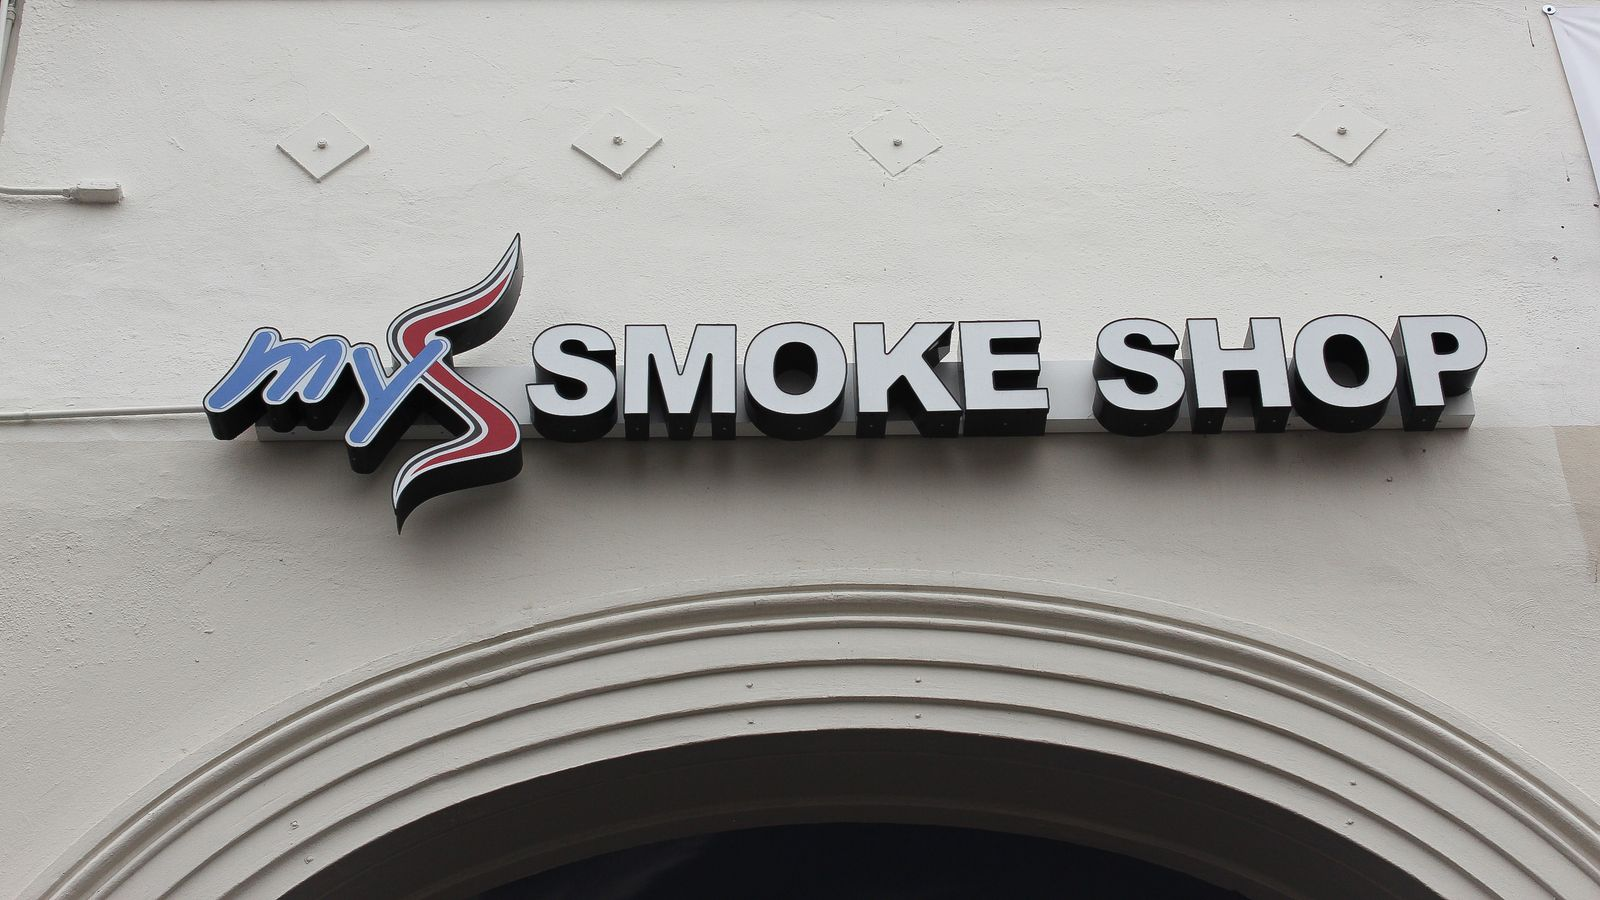 My Smoke Shop 3d sign letters and logo made of aluminum and acrylic for exterior branding